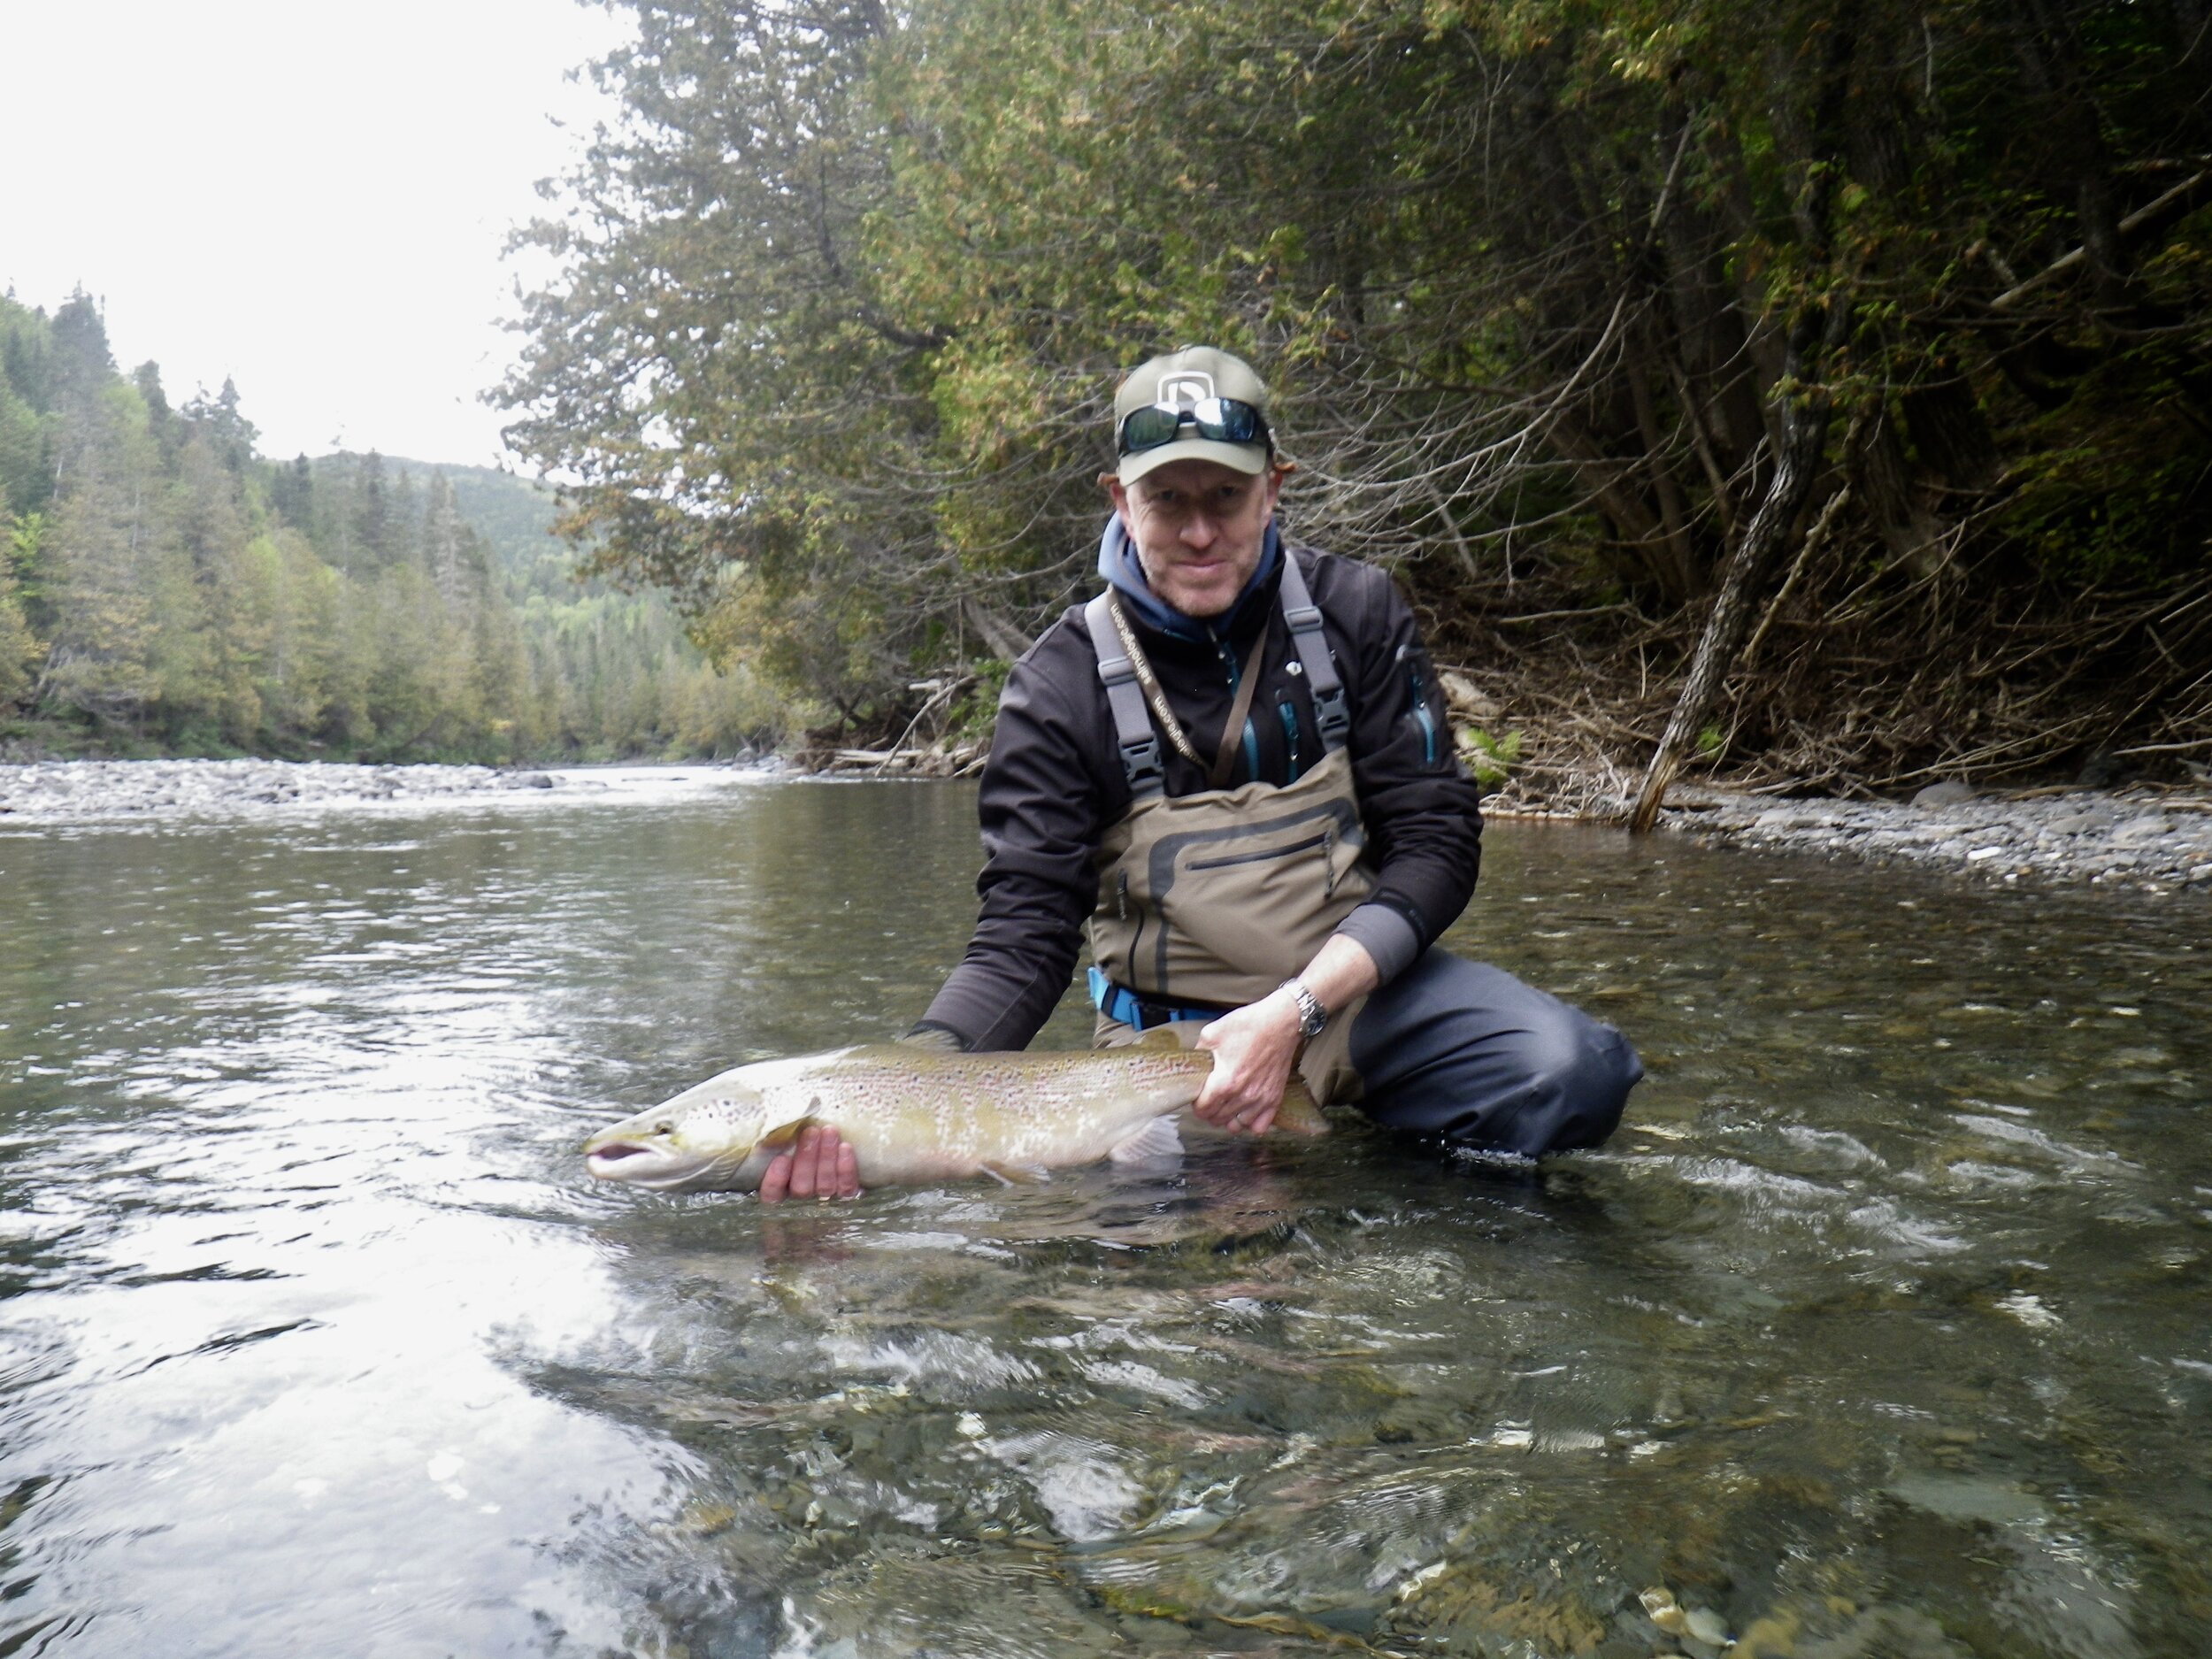 Connor Wallace landed this wonderful salmon on the Bonaventure River! Great Job Connor!